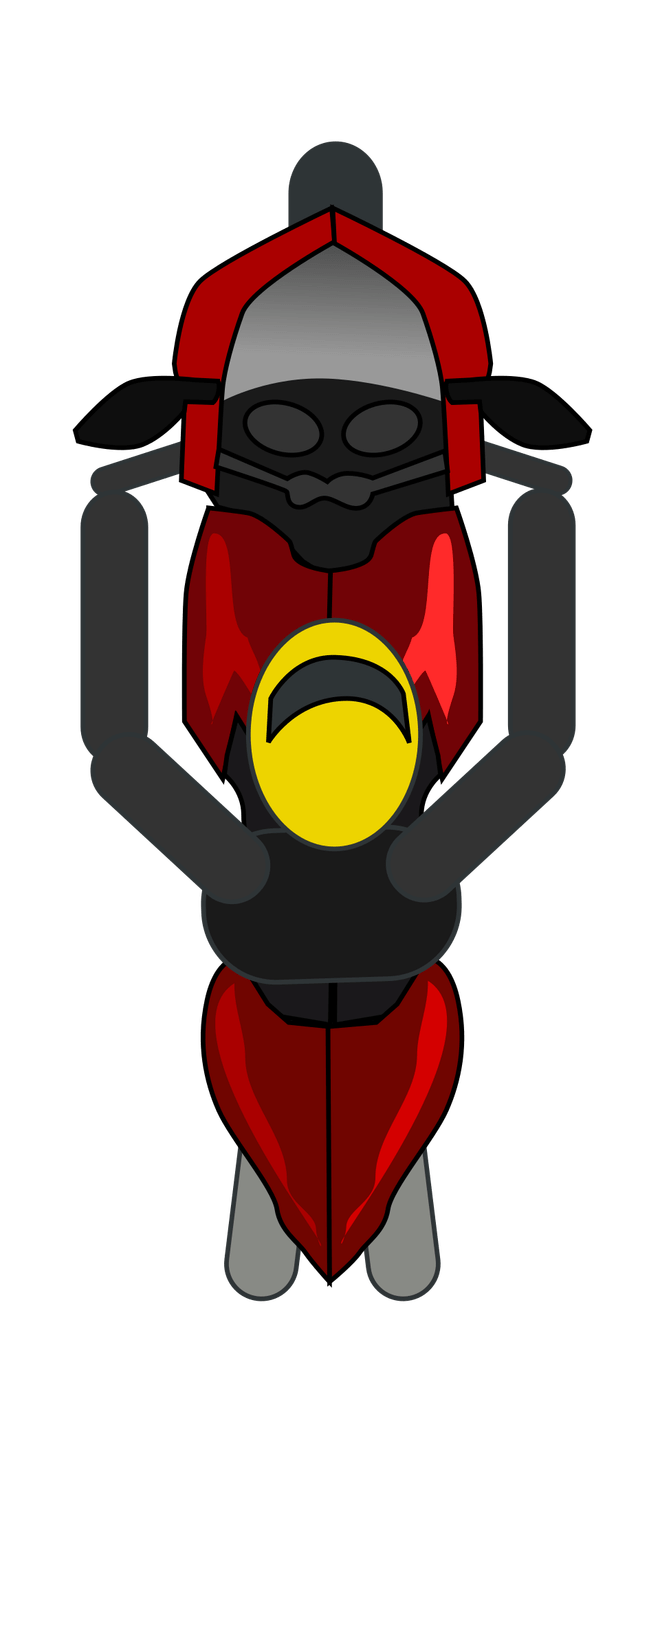 Motorcycle top view png. Clipart disrespect st com